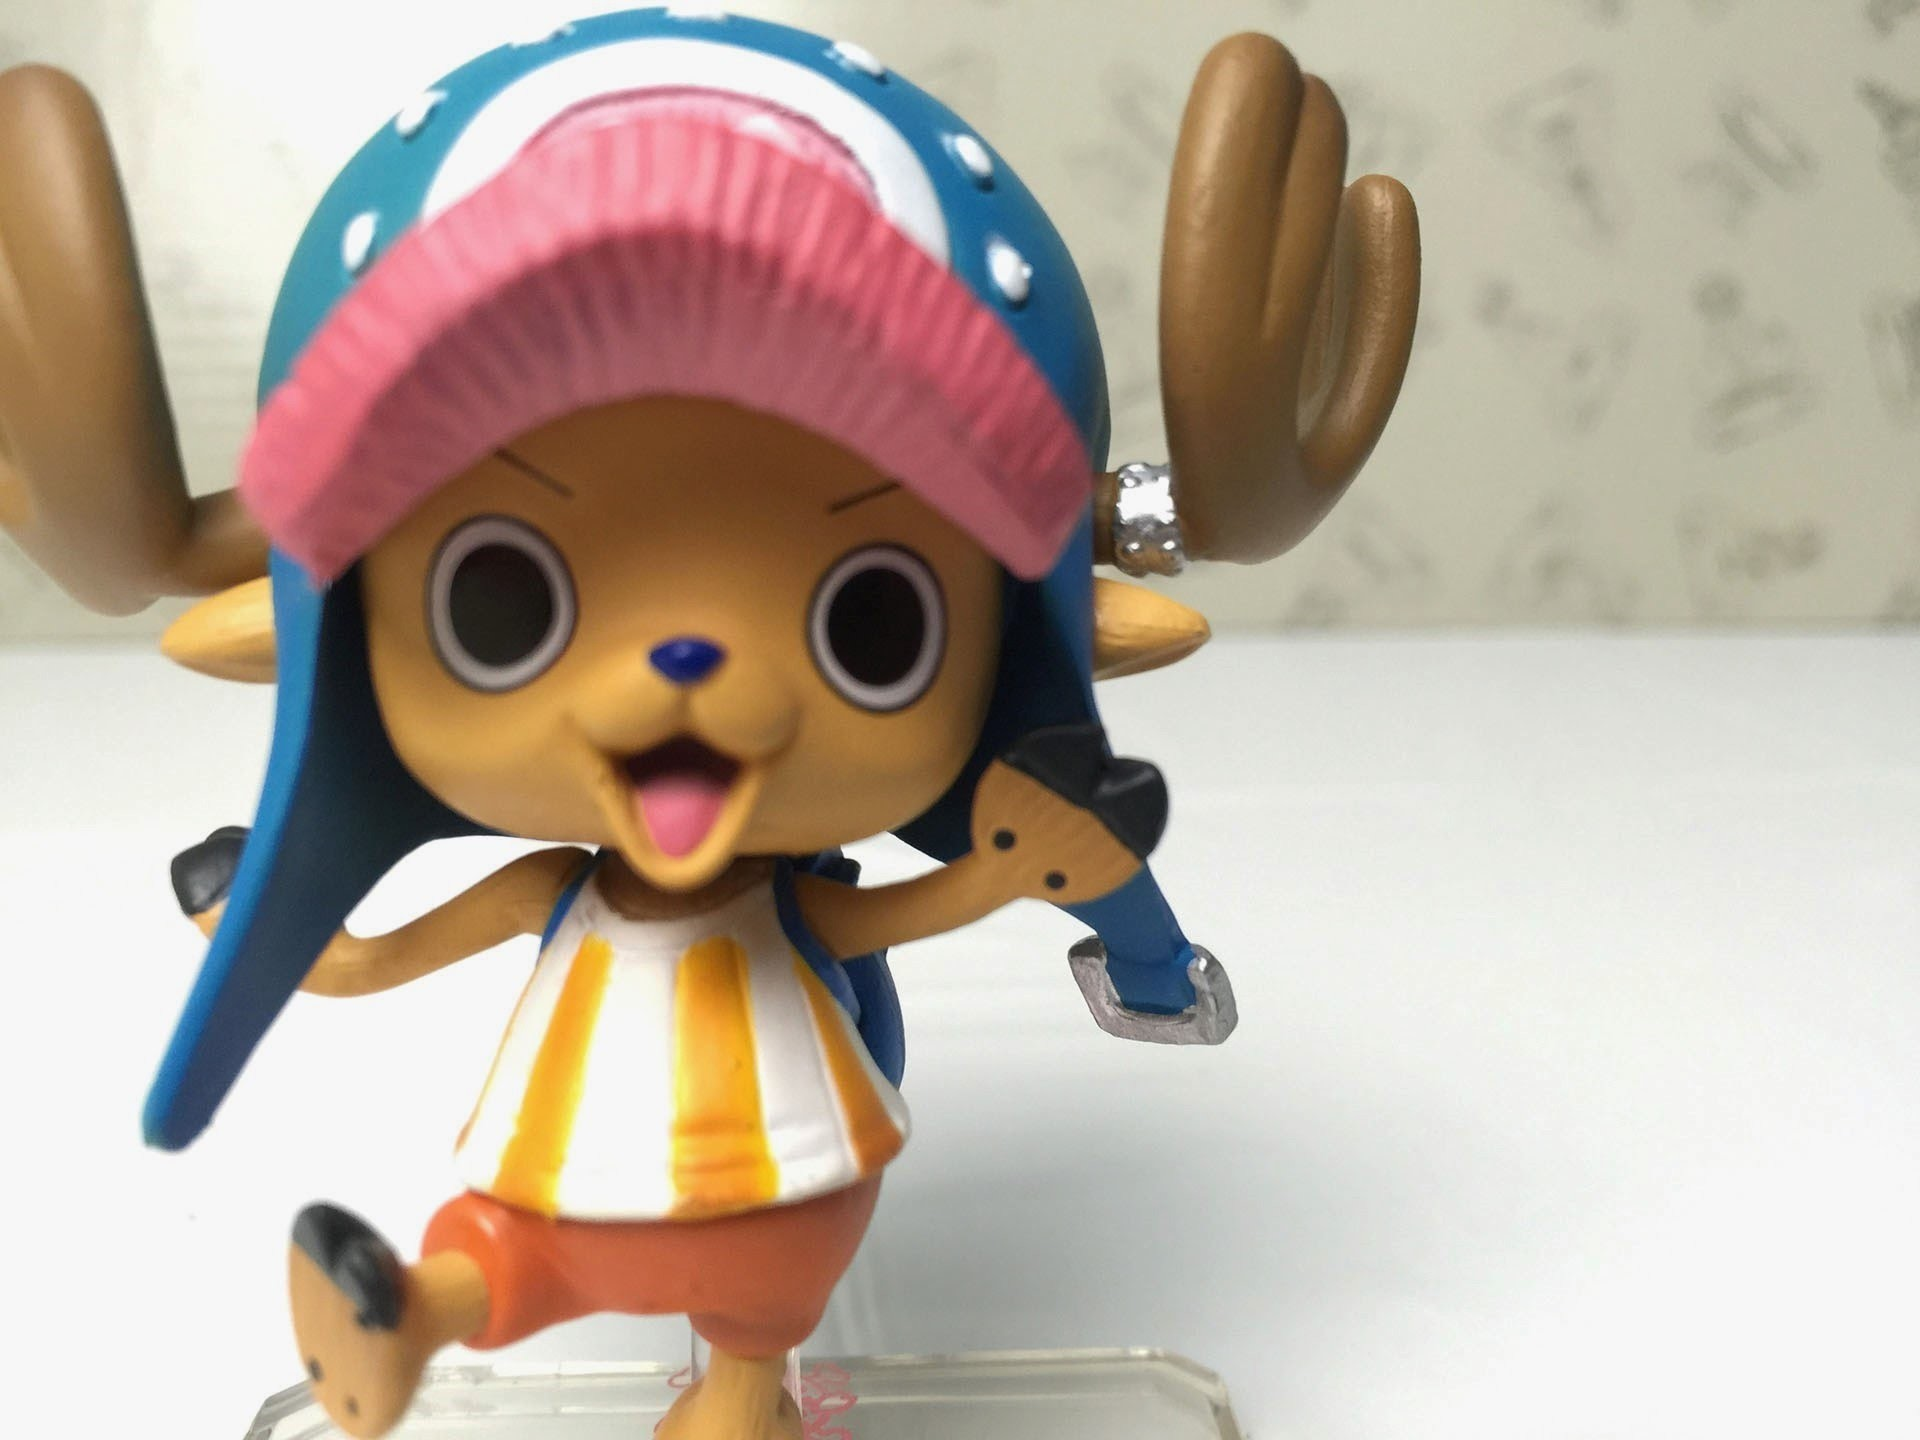 Unboxing & Review of One Piece Figuarts Zero Chopper -5th Anniversary  Edition-